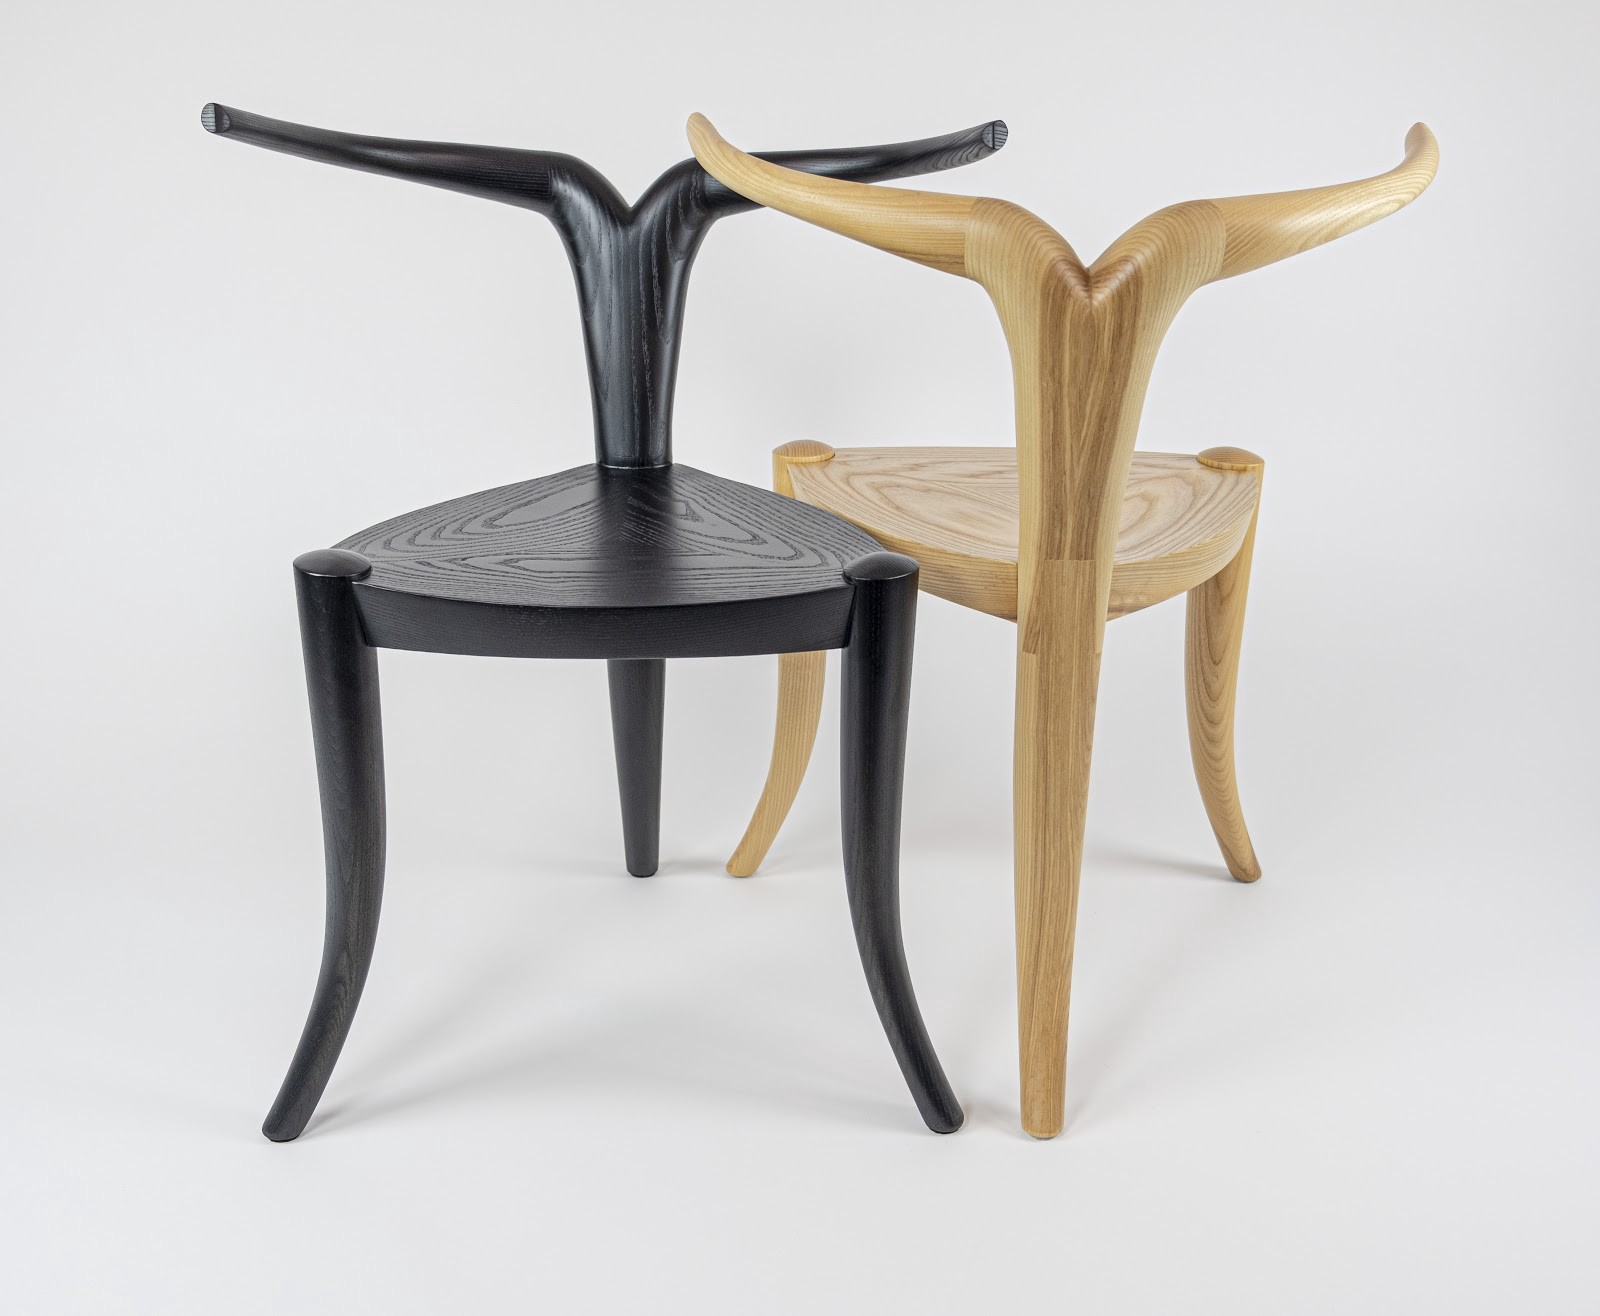 Two 3-legged wood chairs, one natural, one black. For a back, each has a single pole that splits into two antler-like arms.